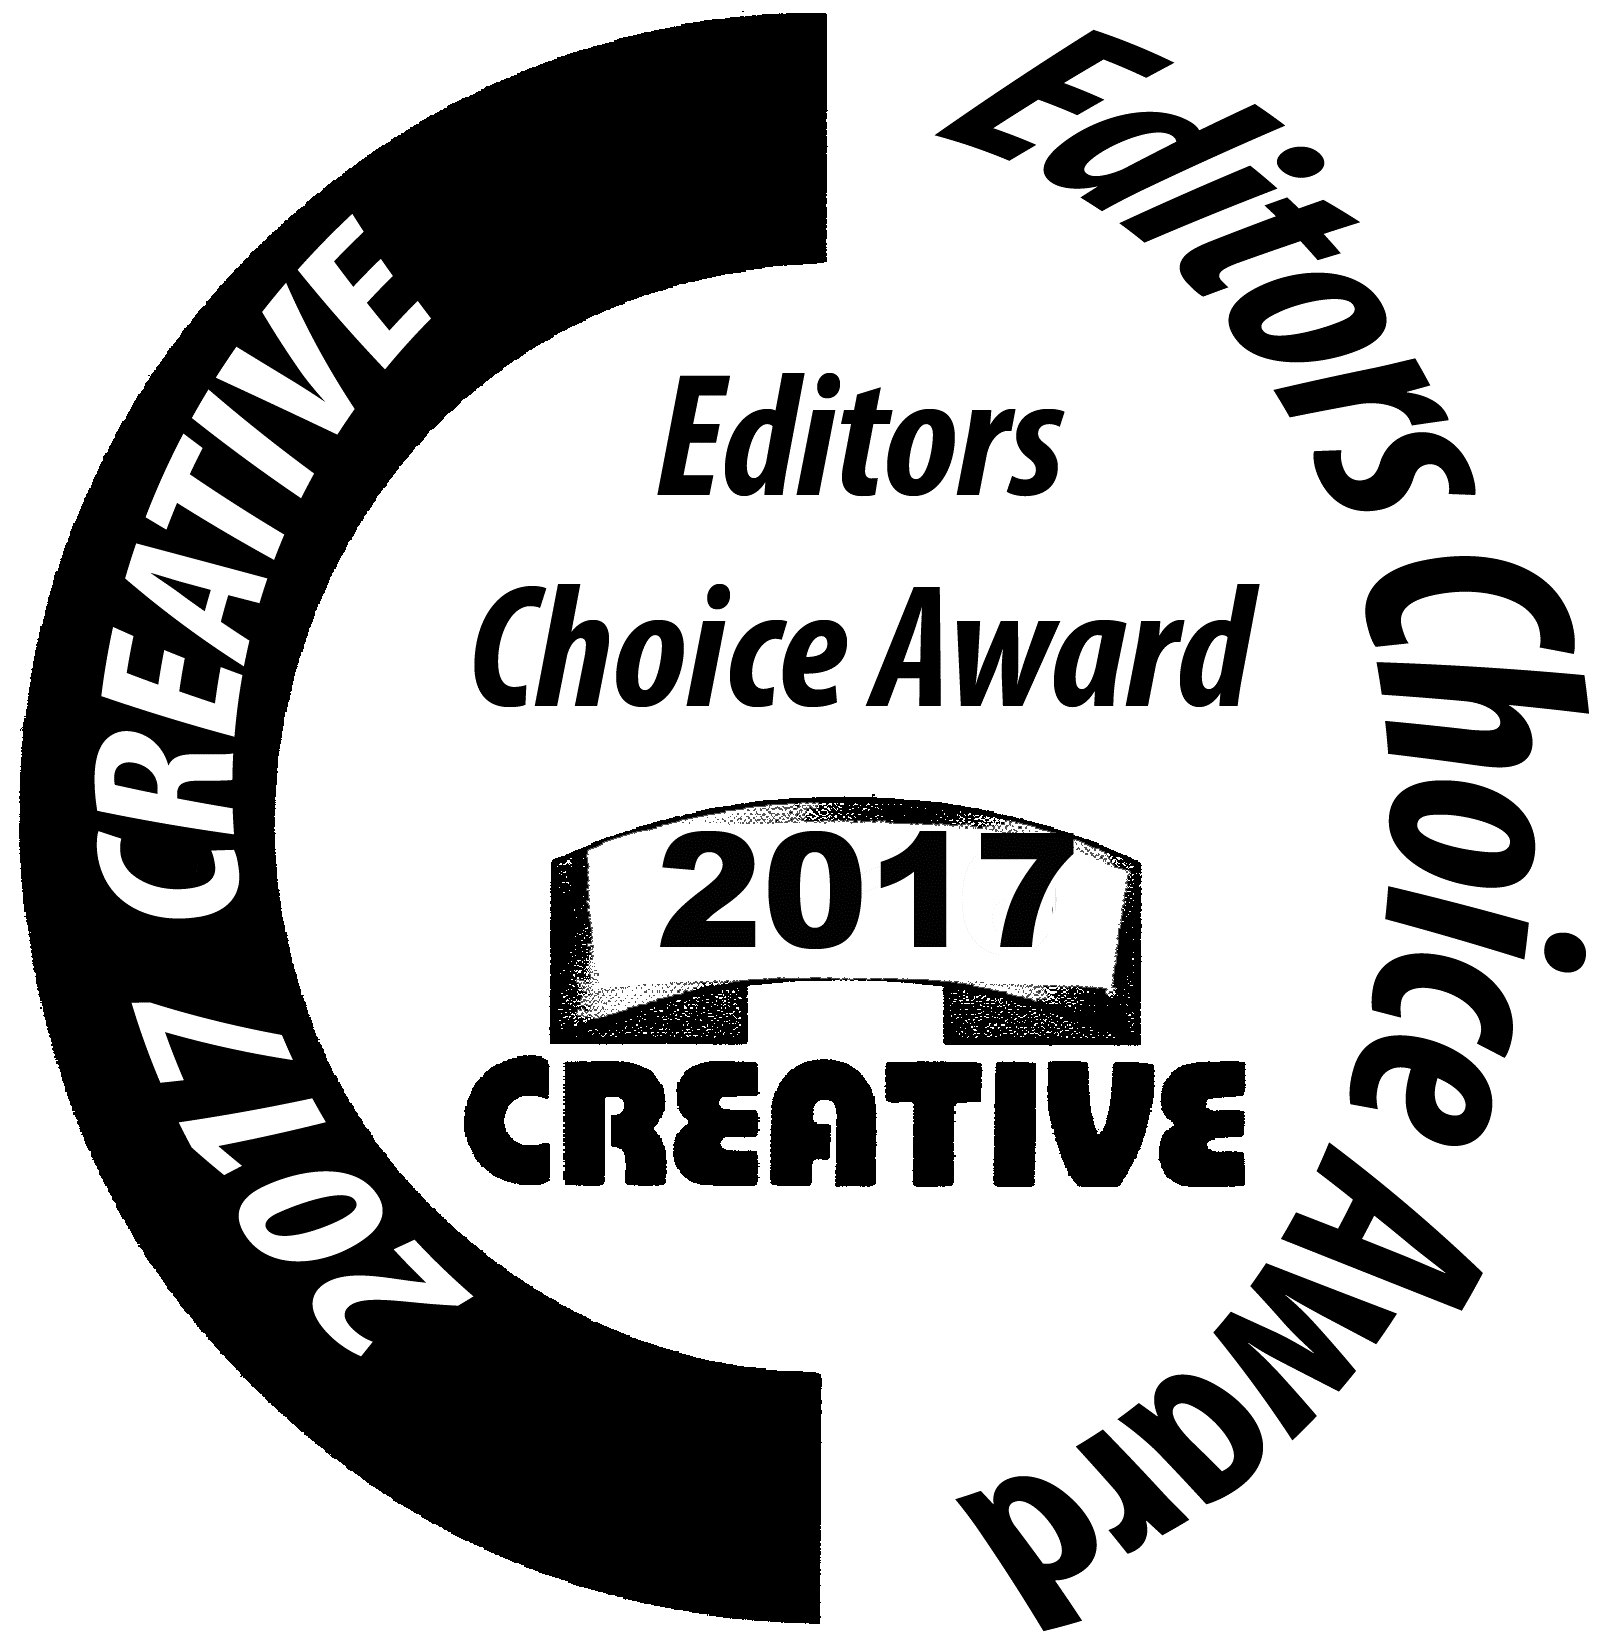 Creative Editors' Choice Award